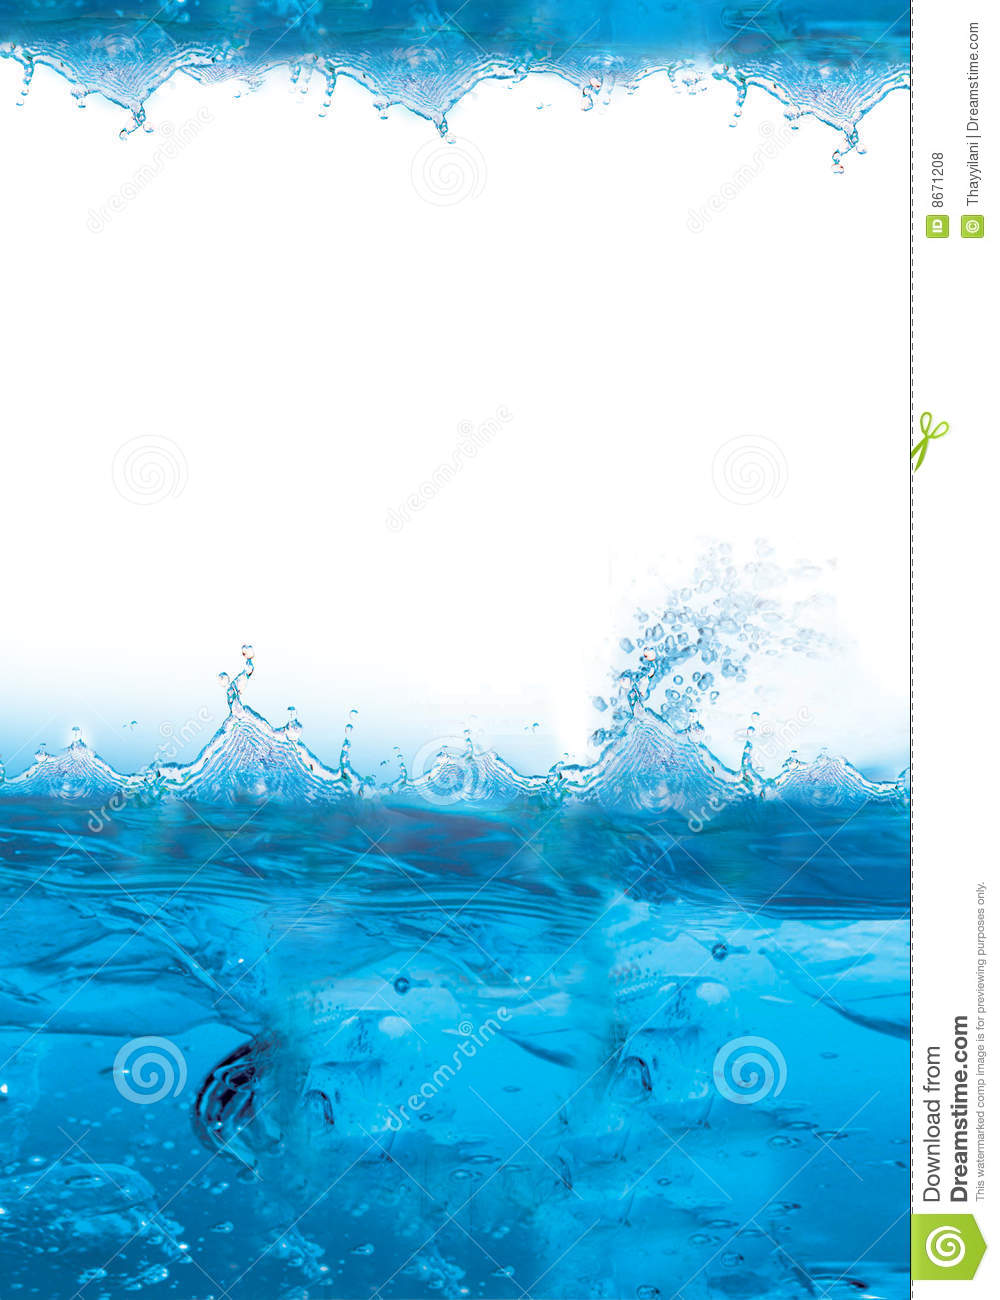 Cool blue and icy background